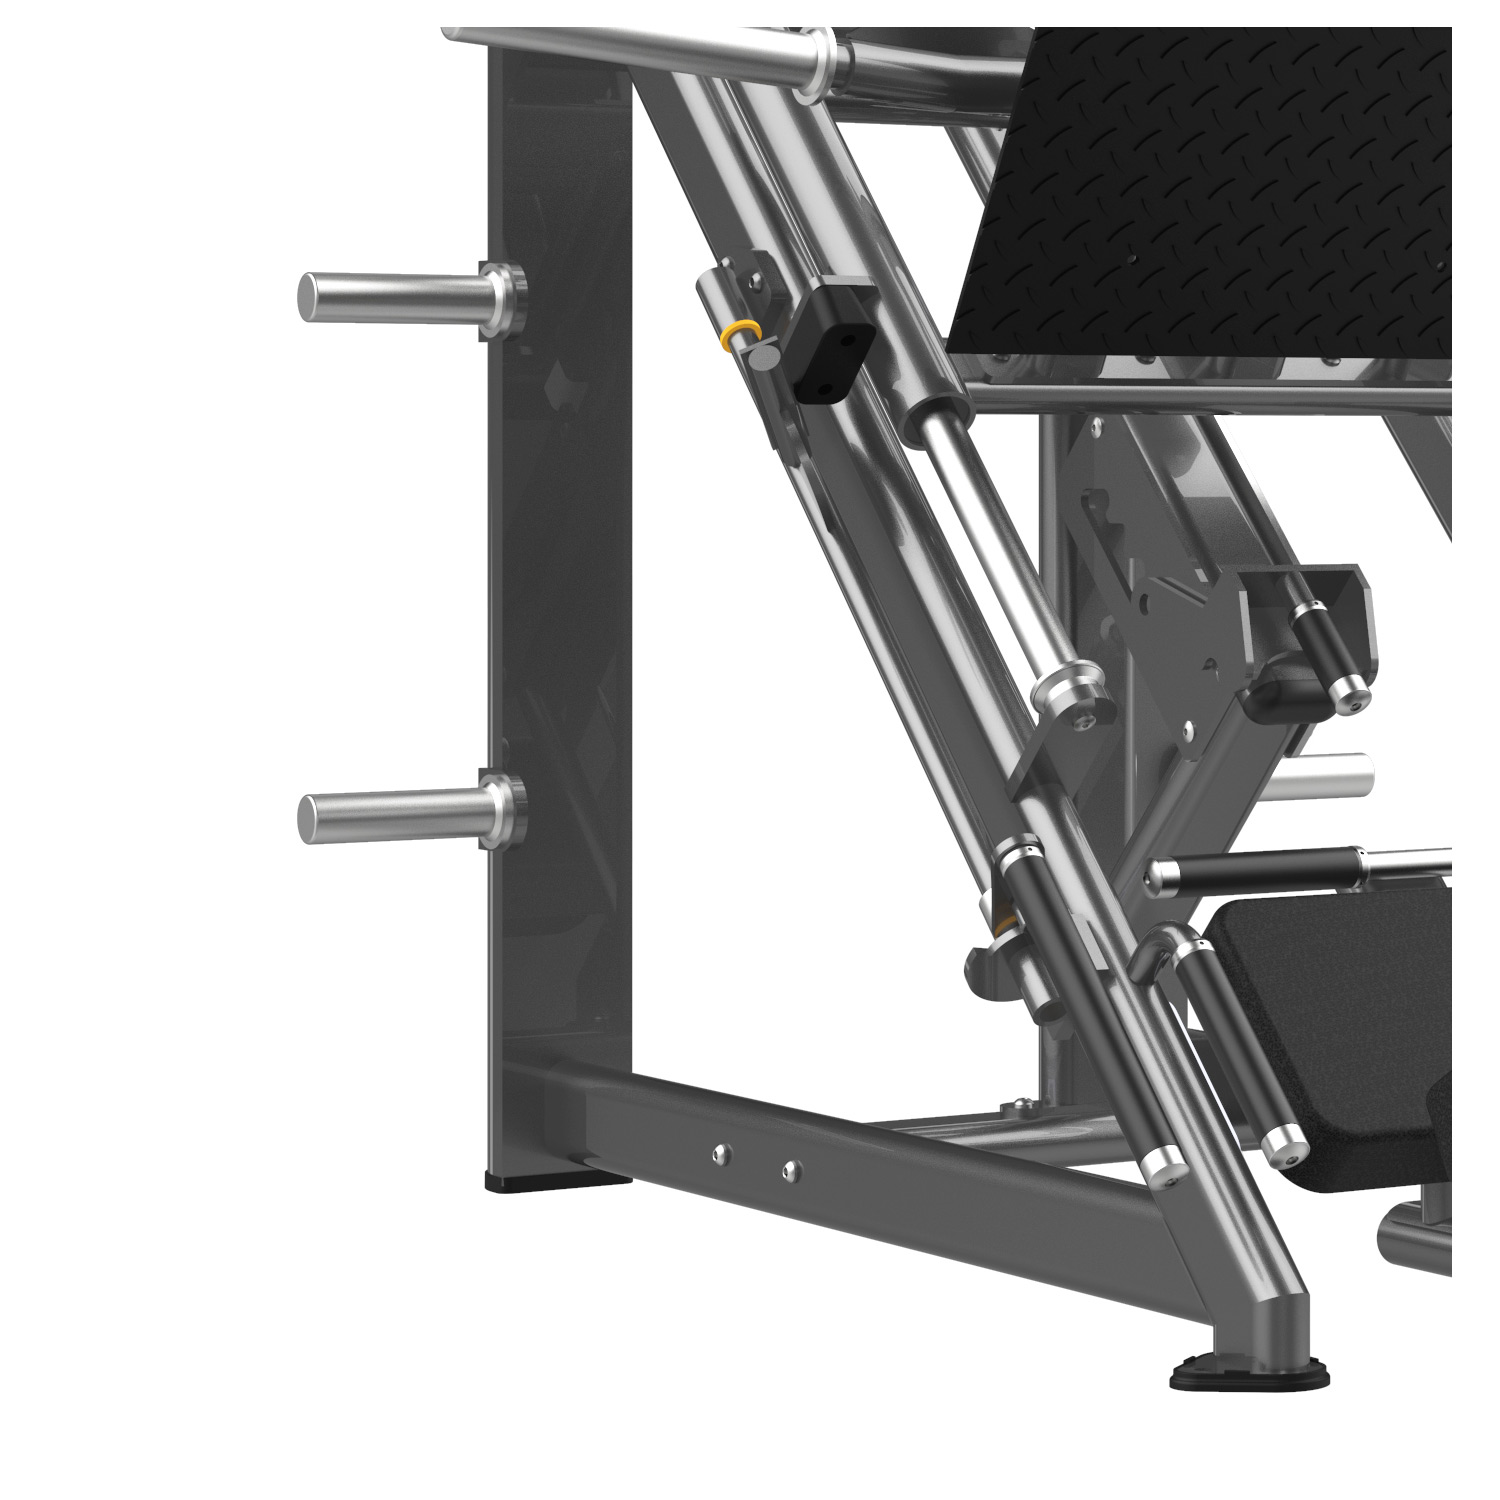 FM-1024D 45-Degree Leg Press